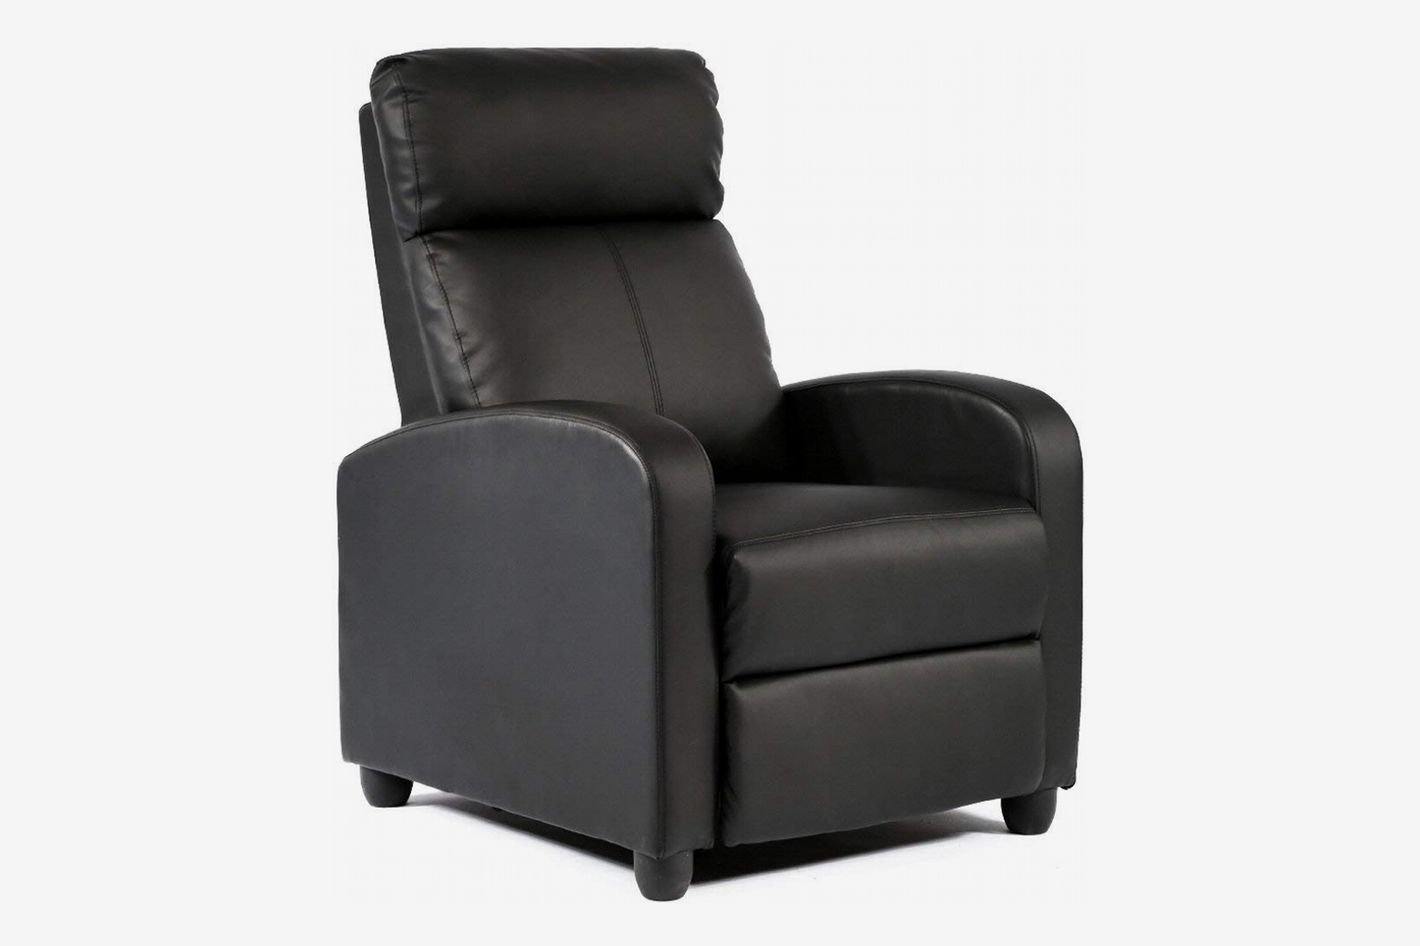 Bestmage Modern Leather Chaise Couch Single Recliner Chair